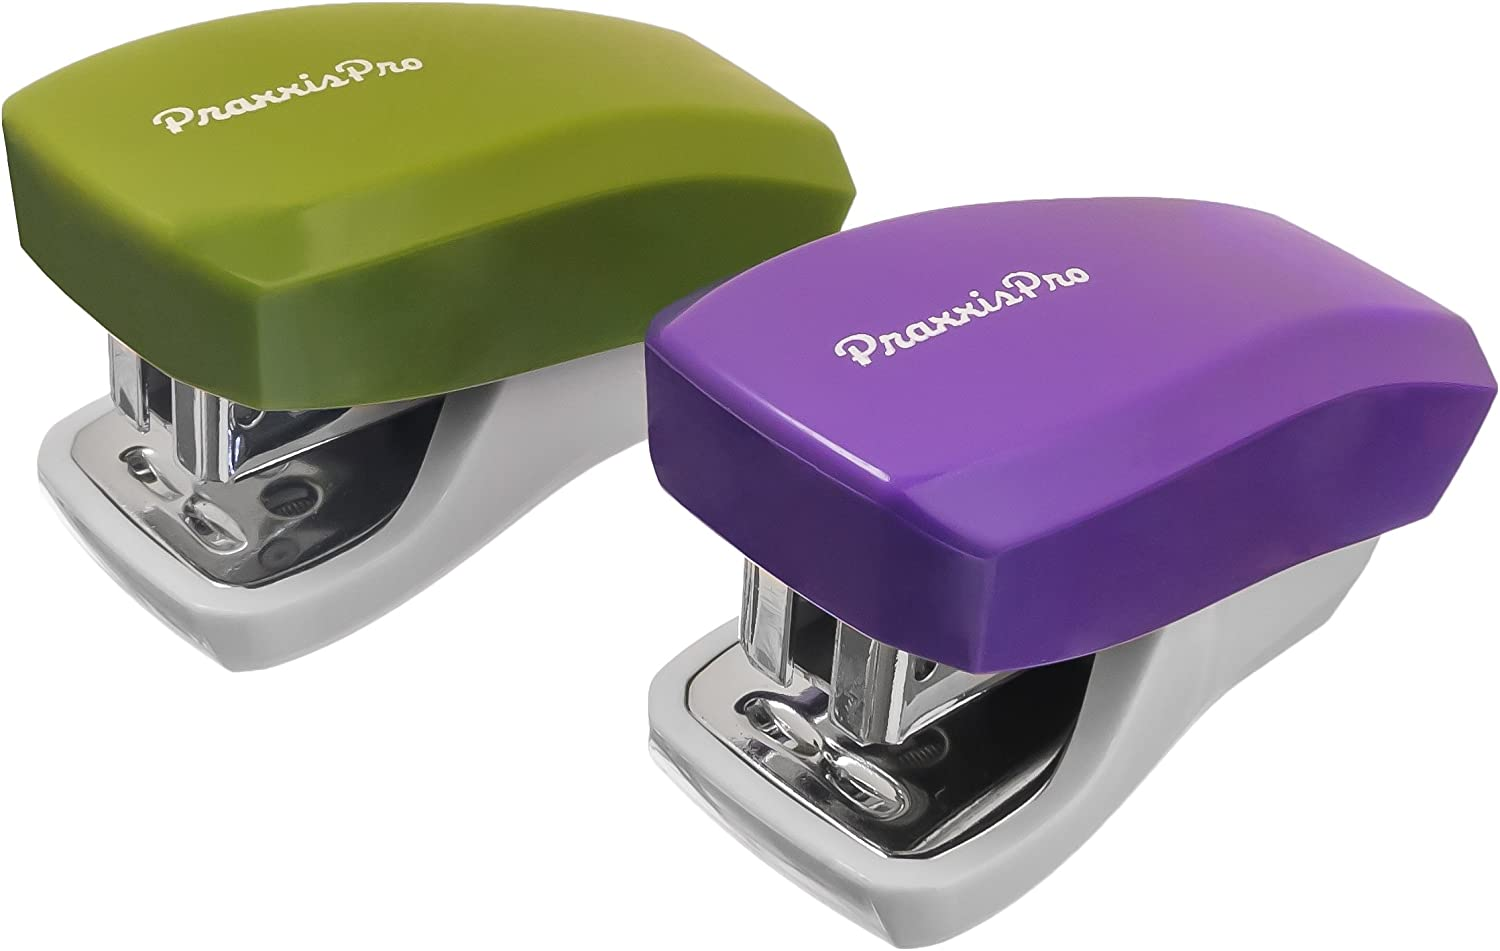 PraxxisPro Many popular 5 ☆ popular brands Mini Staplers with Box of 1000 S Built Staples in and